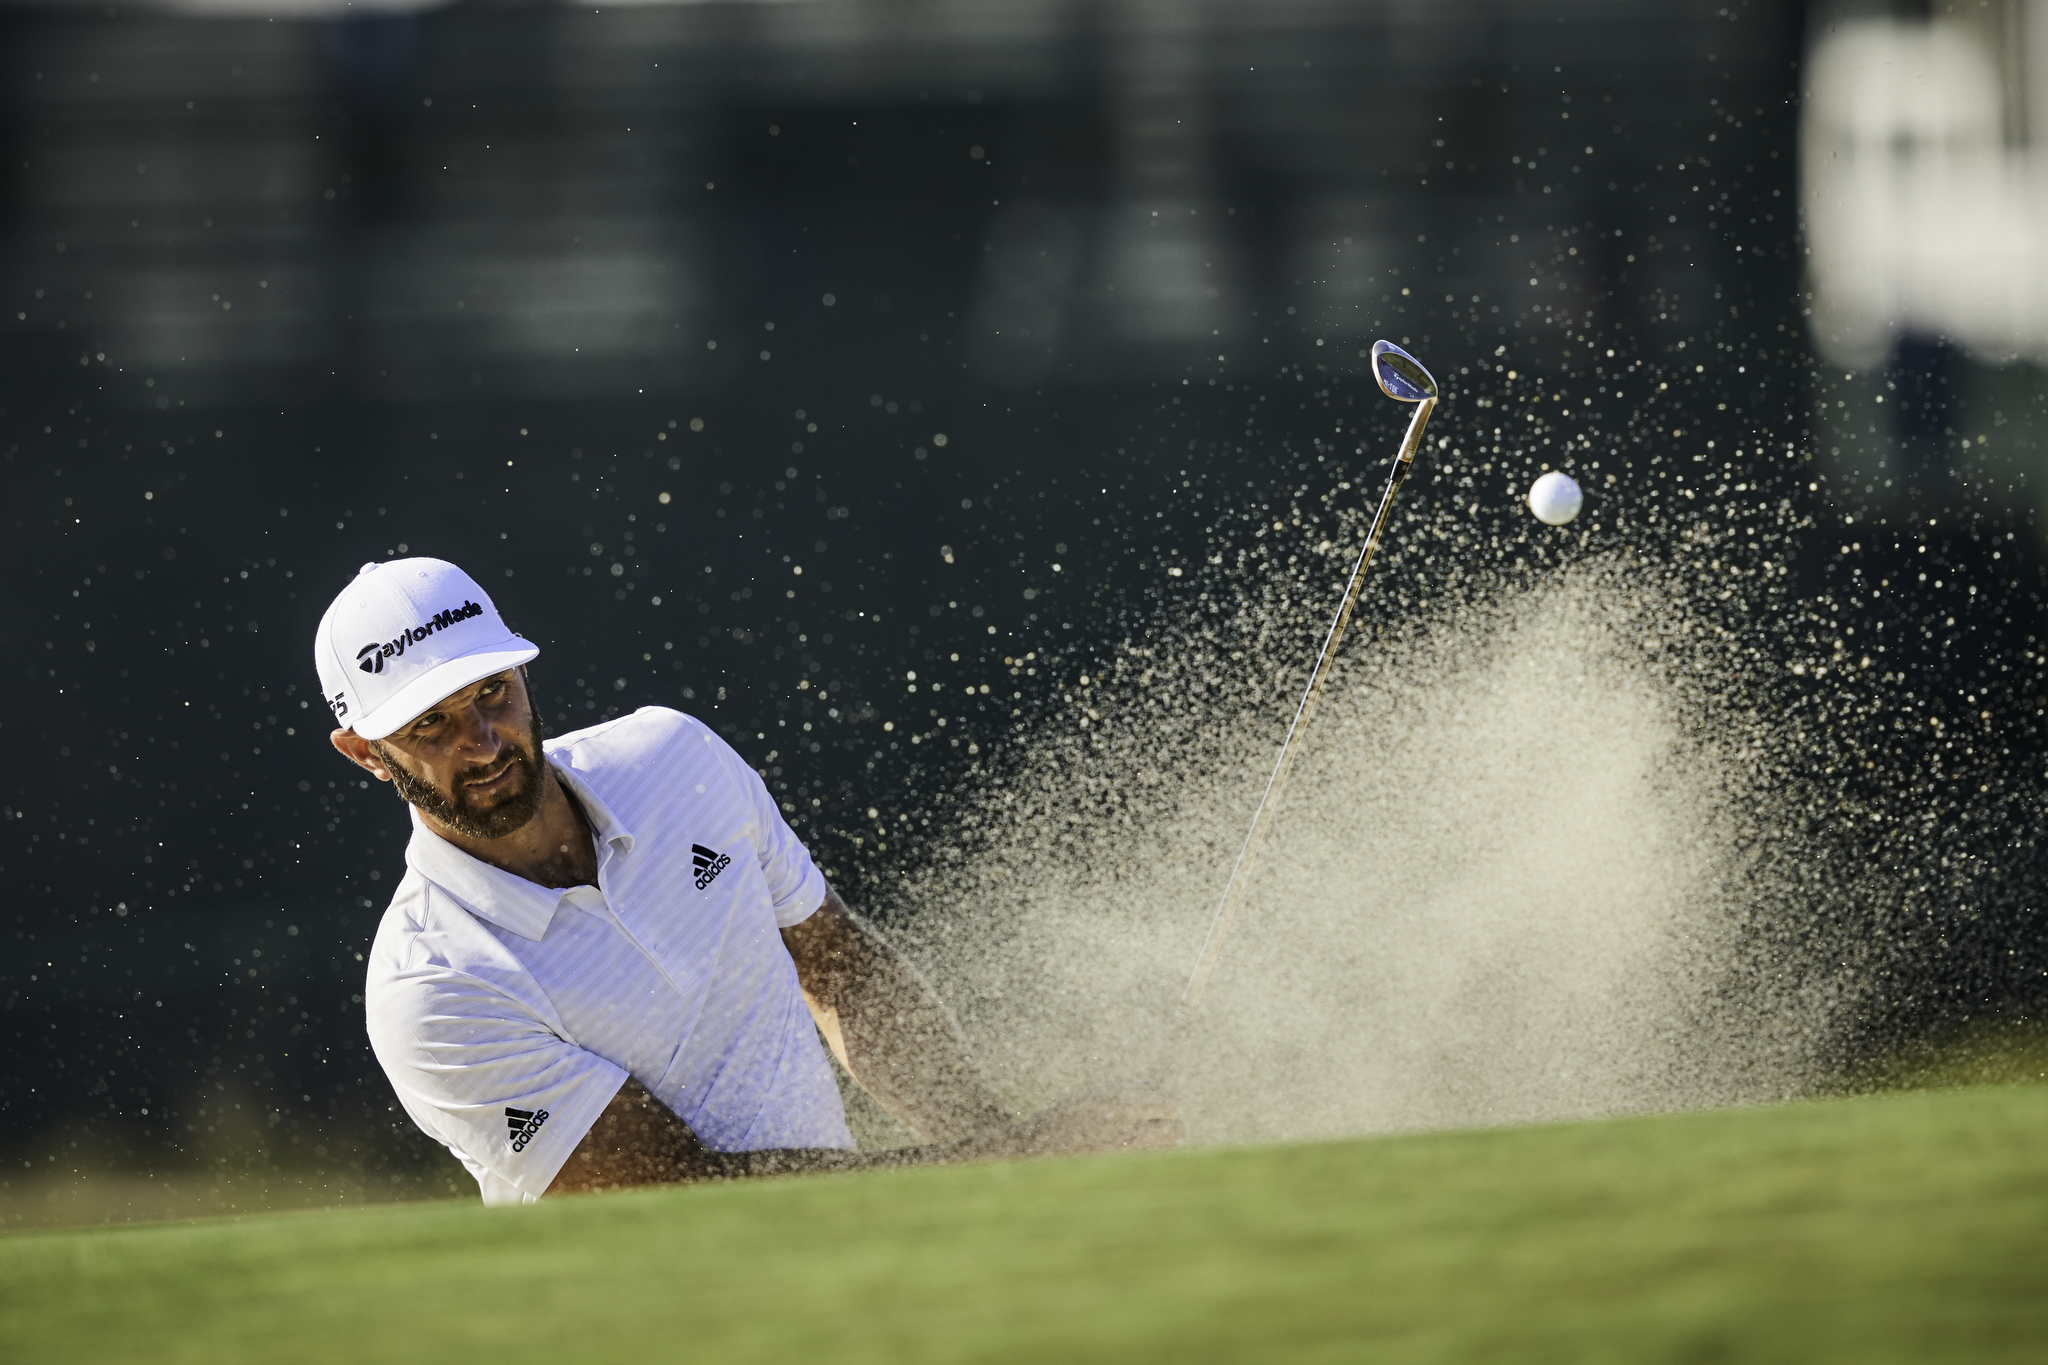 Dustin Johnson plays from a bunker at the second hole during a practice round.   Sony A9, Sony 400mm f2.8 GM-OSS. ©USGA/Darren Carroll